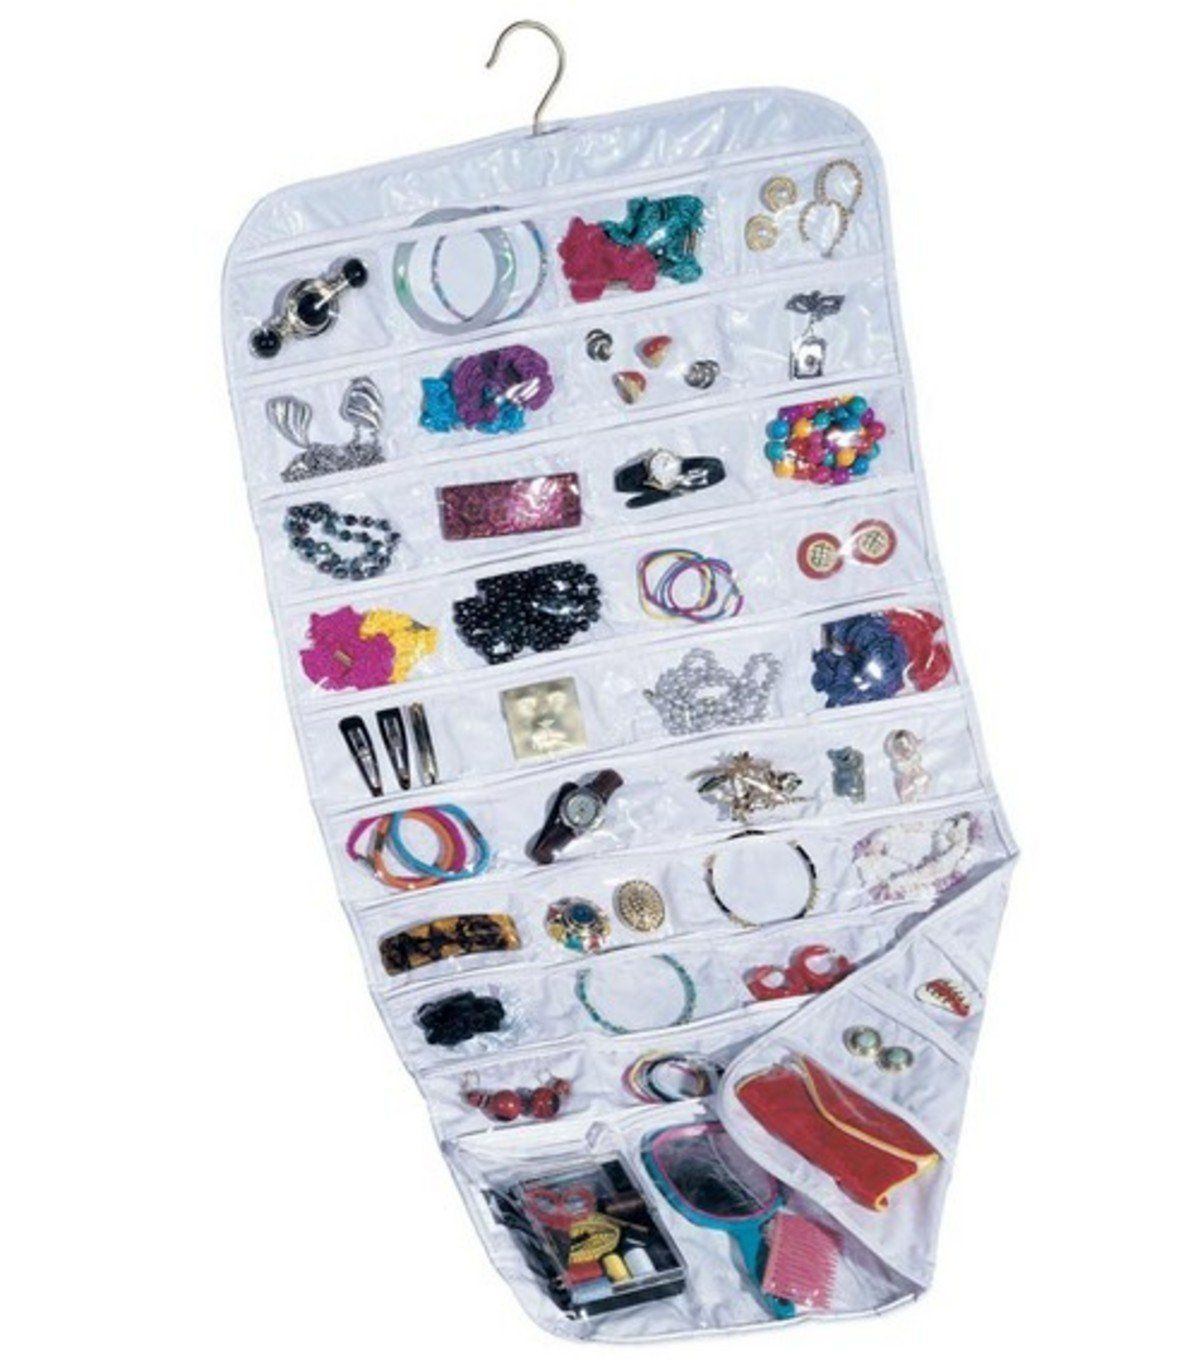 Amazoncom Household Essentials 80Pocket Hanging Jewelry and